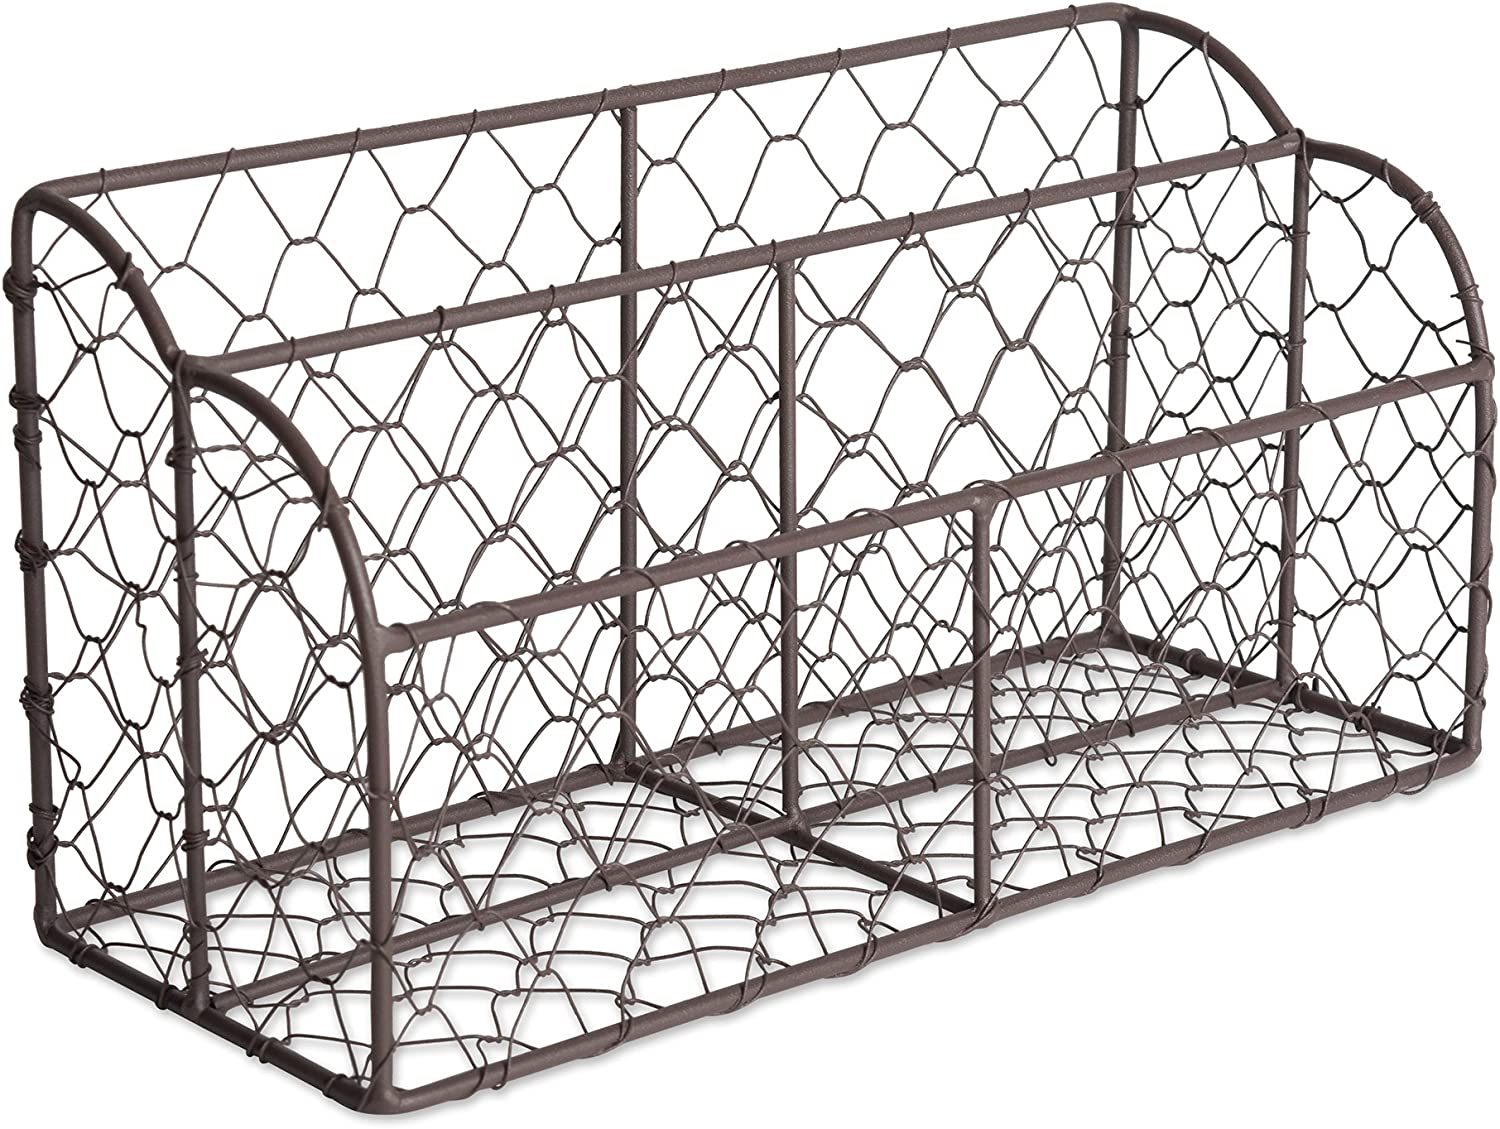 DII Home Traditions Rustic Farmhouse Chicken Wire Letter Holder with Two Slots for Home or Office to Sort and Organize in-Coming or Out-Going Letters and Bills